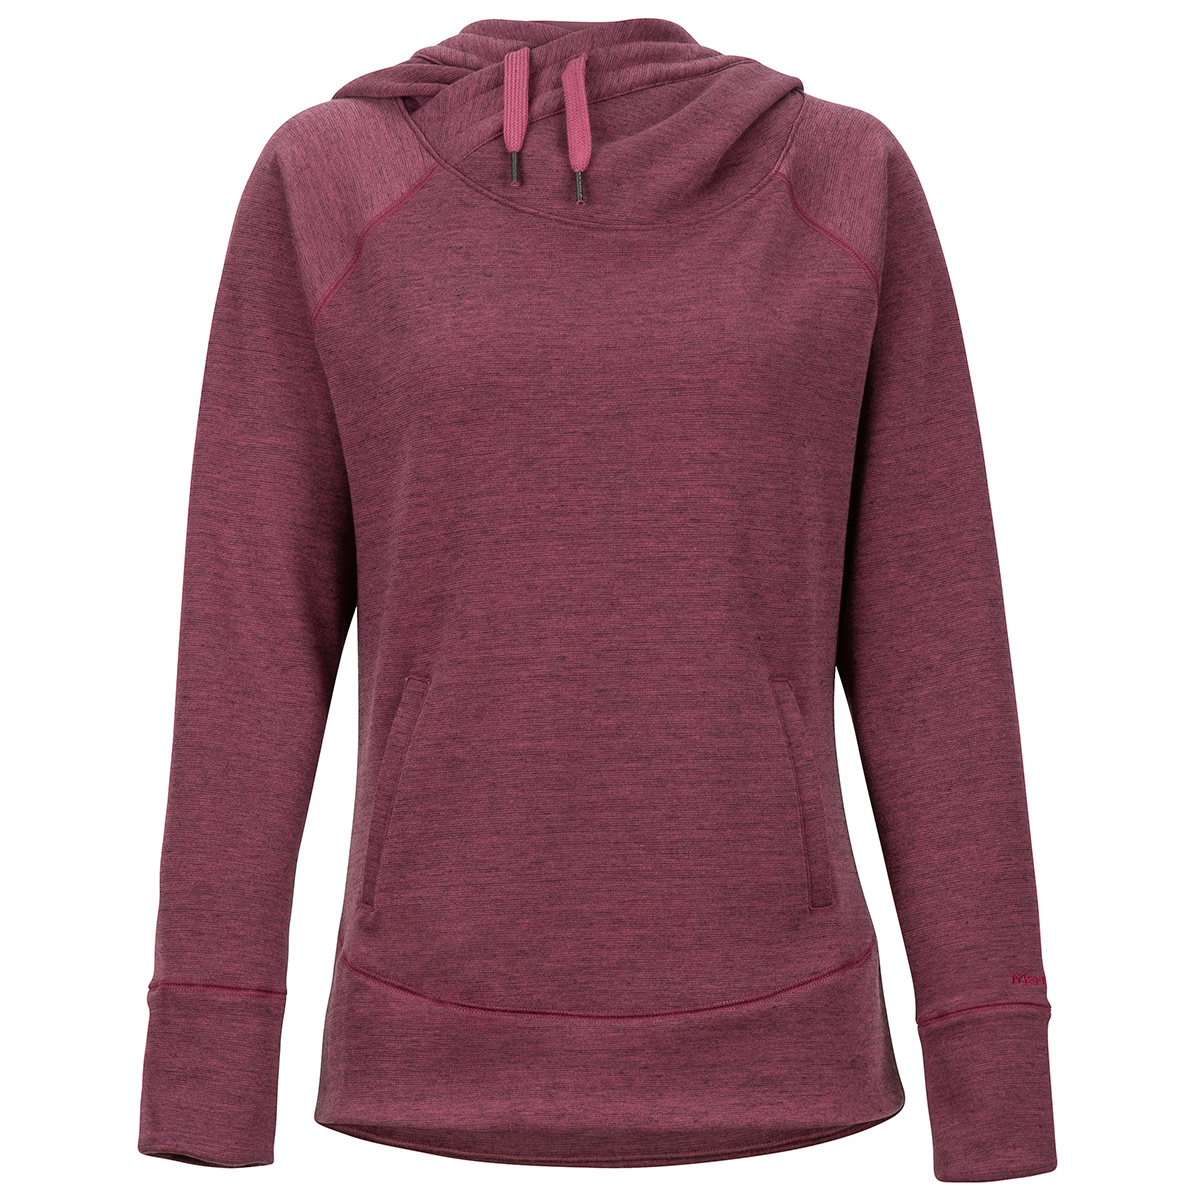 Marmot Women's Rowan Hoody - Red, M